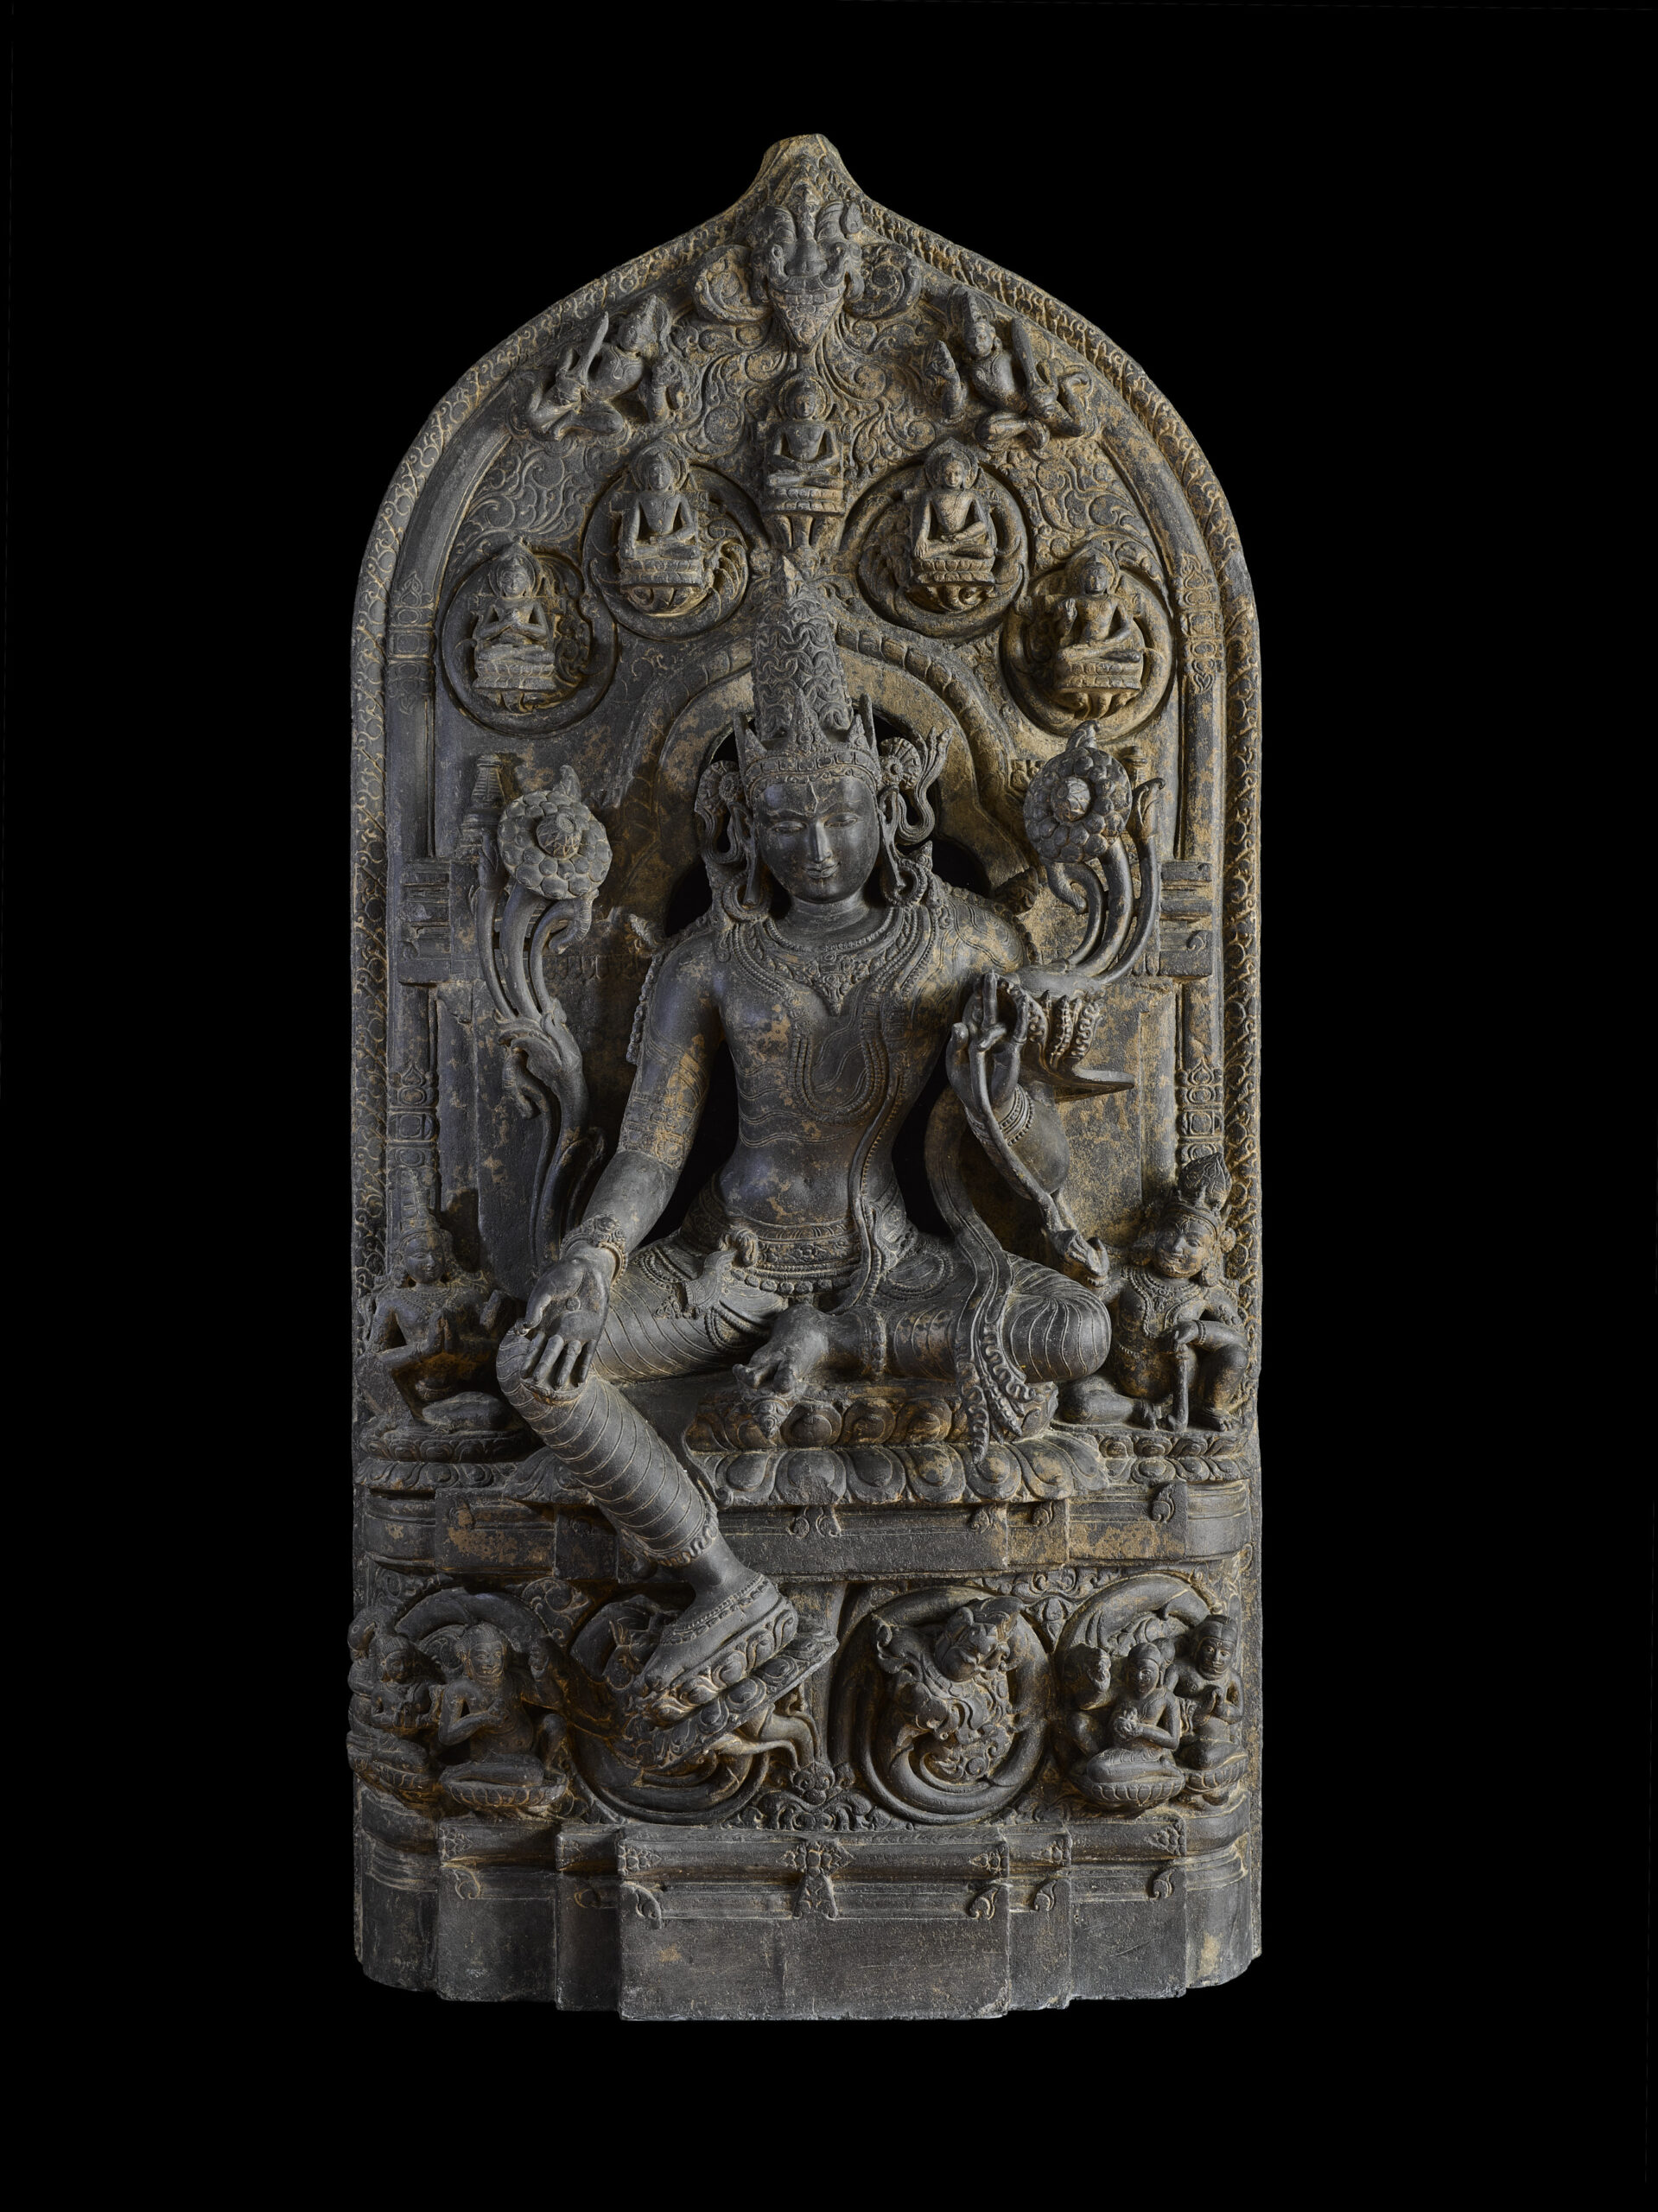 Early 12th century stone stele from eastern India depicting Khasarpana Lokeshvara